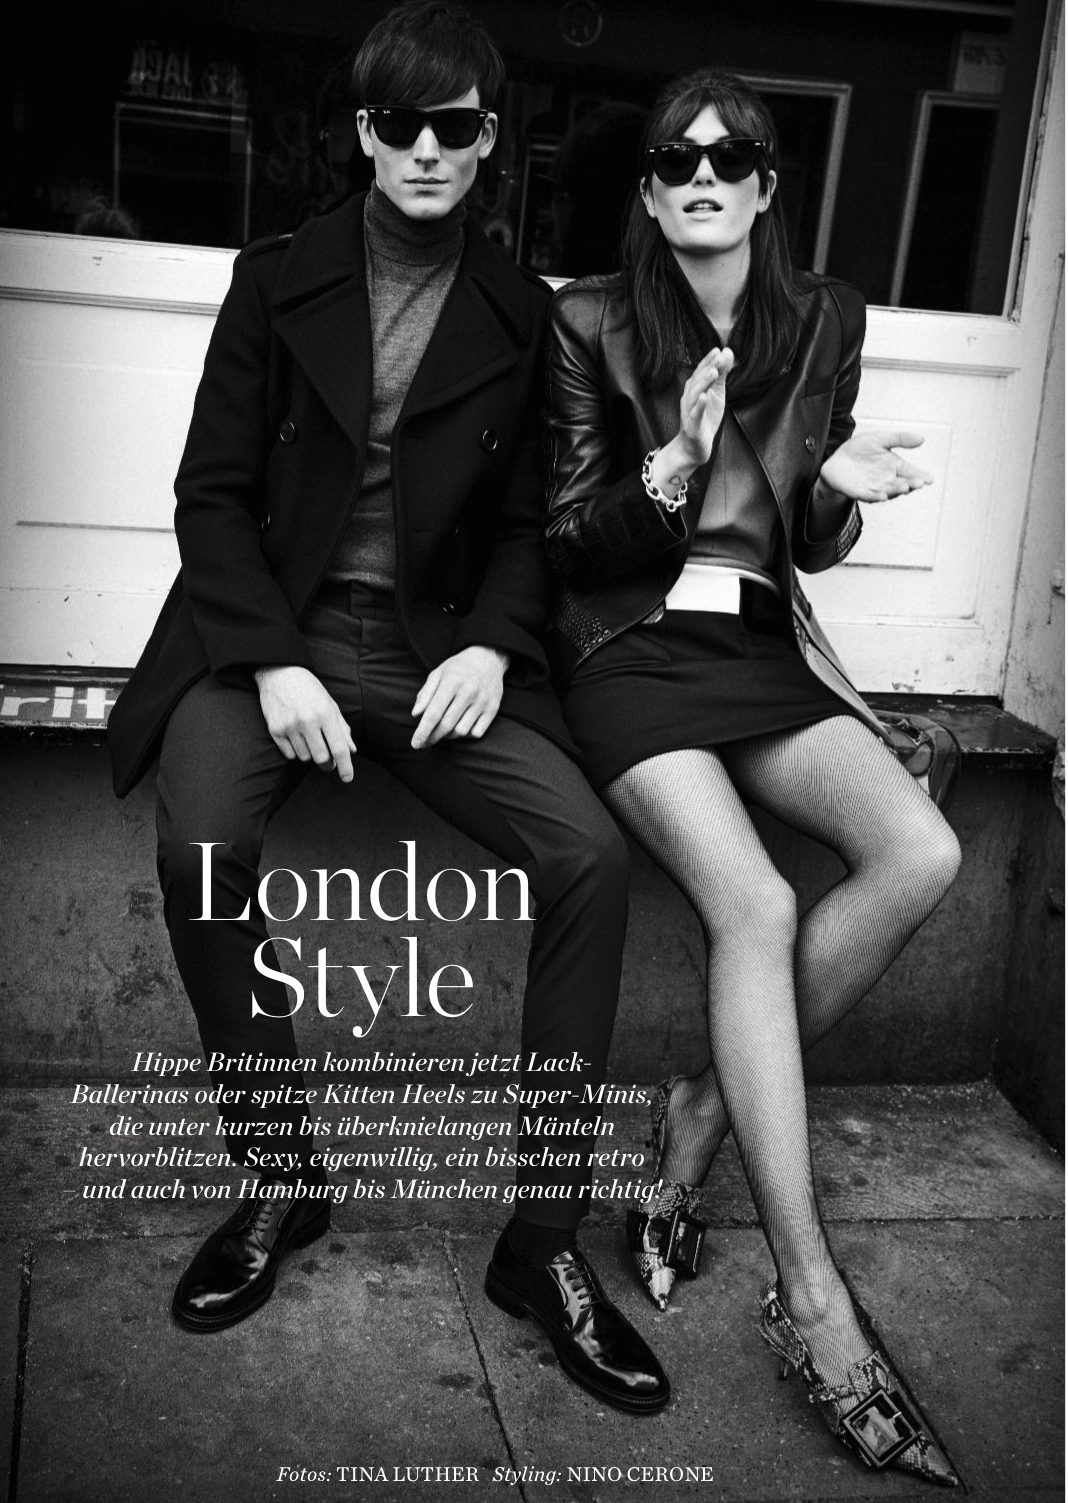 LONDONSTYLE 1